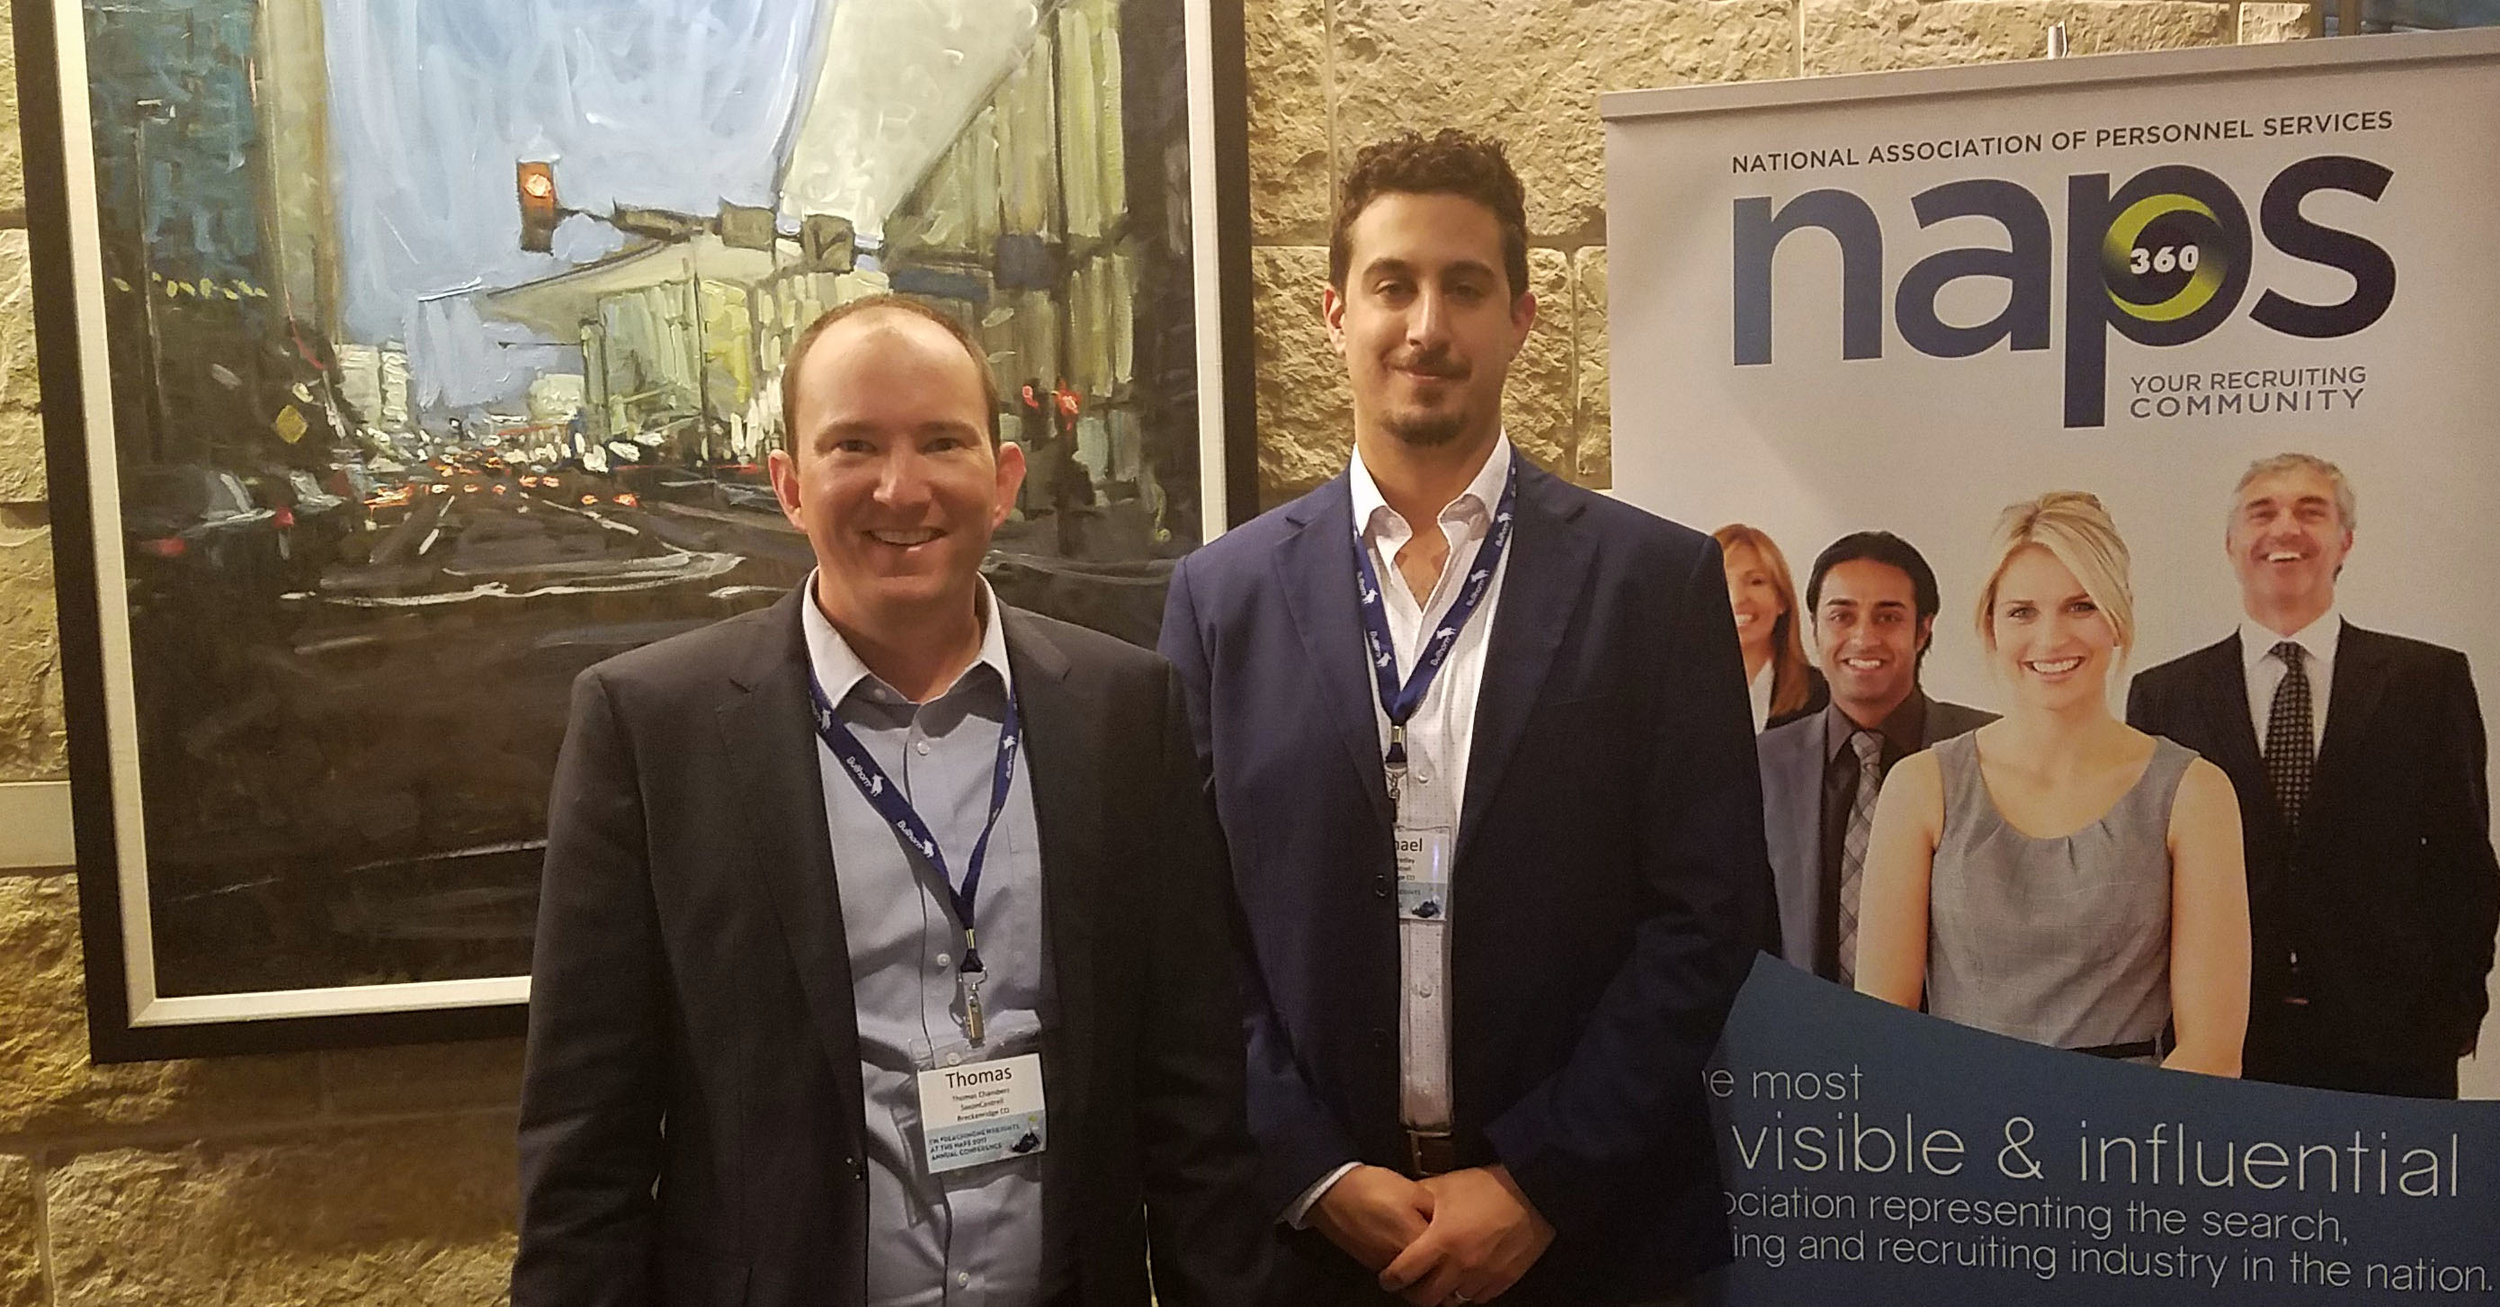 National Association of Personnel Services (NAPS) 2017 National Conference  - Our team had the opportunity to attend, network with peers from around the world, and learn current best-practices from Fortune 500 and agency recruiting leaders.